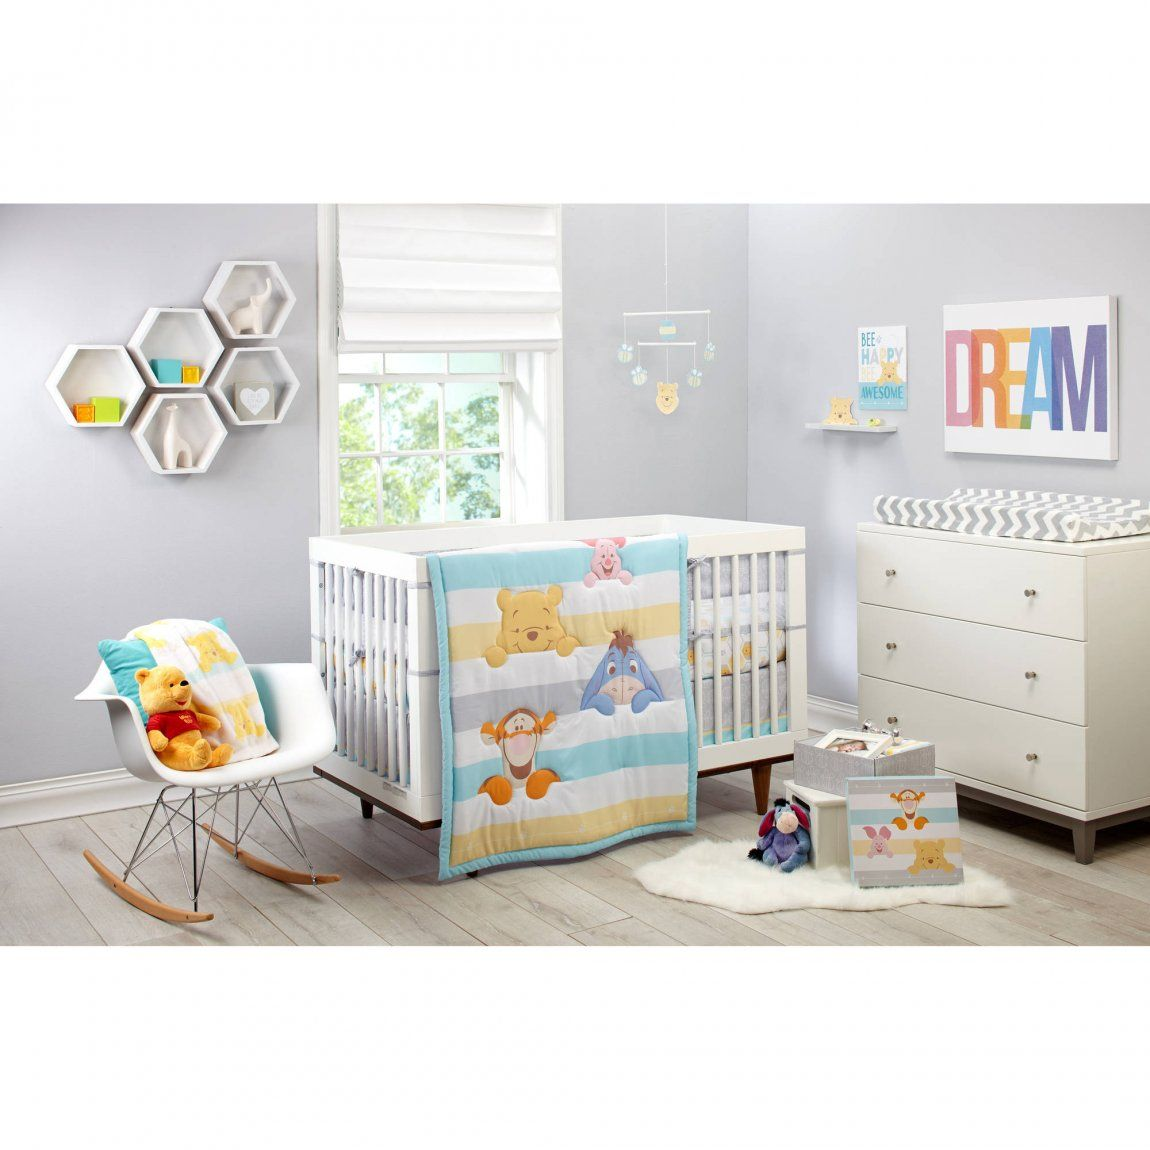 Baby Bettwäsche Winnie Pooh Nursery Bedroom Sets Bett Baby Crib Bedding Crib Bedding Boy